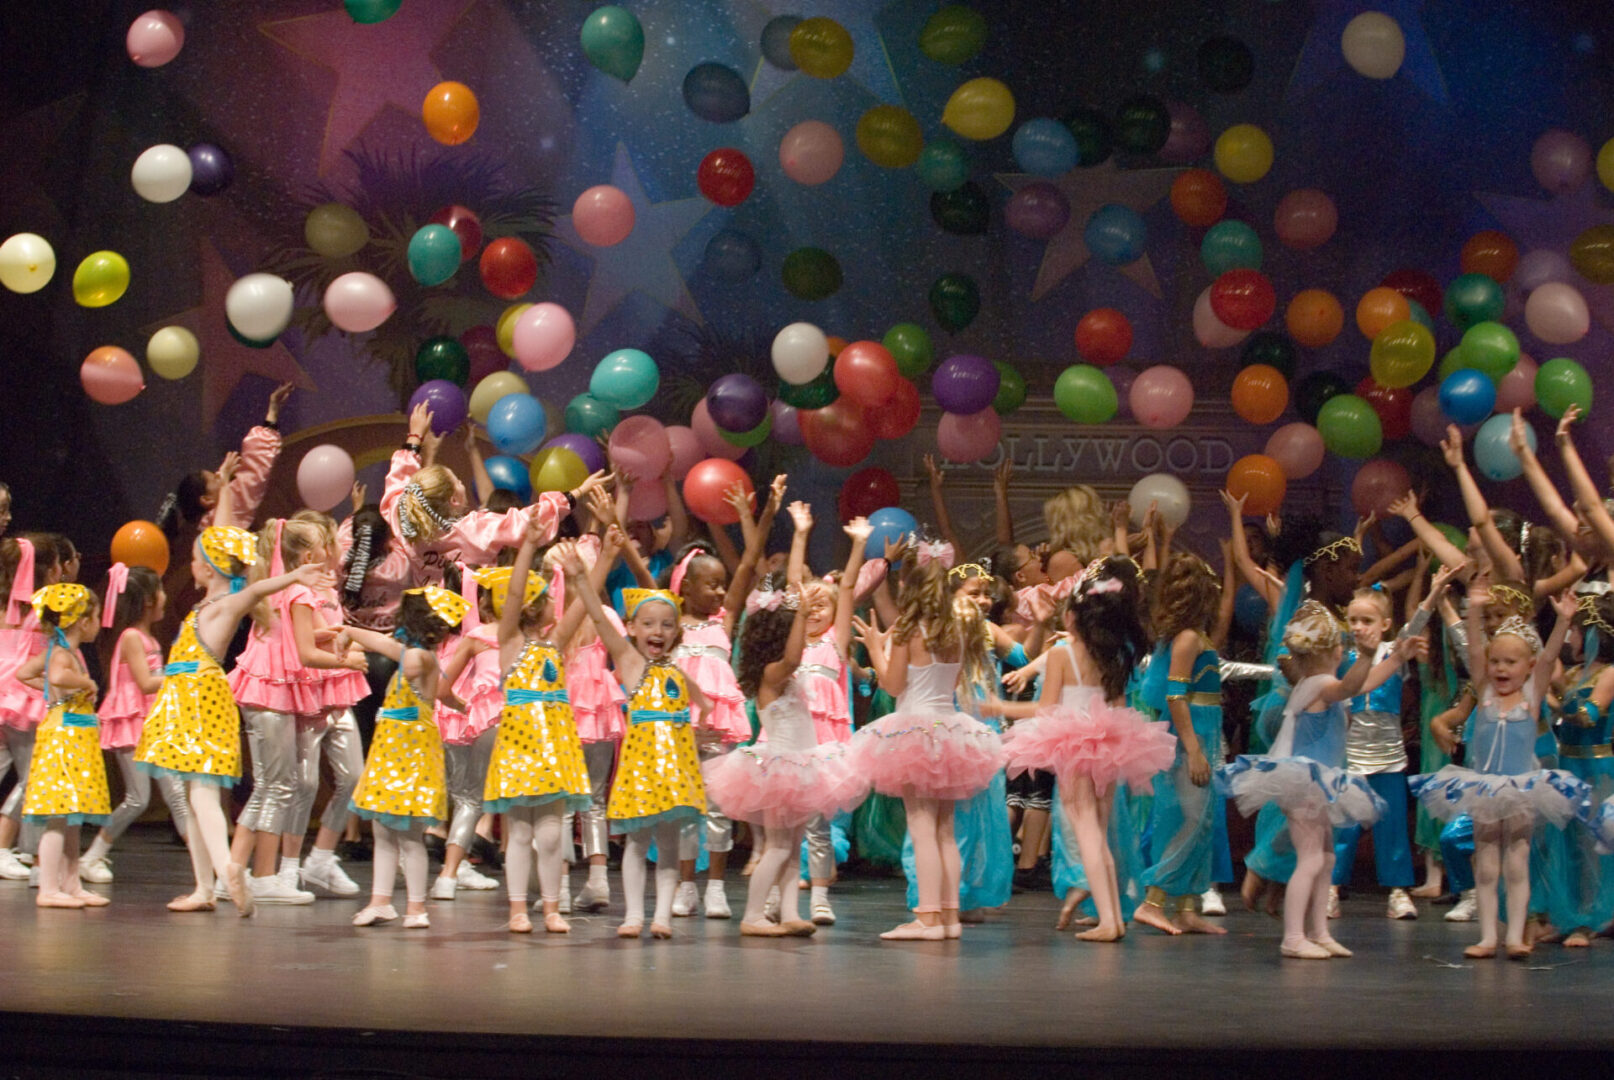 Twinkle Toes Dance Productions, LLC